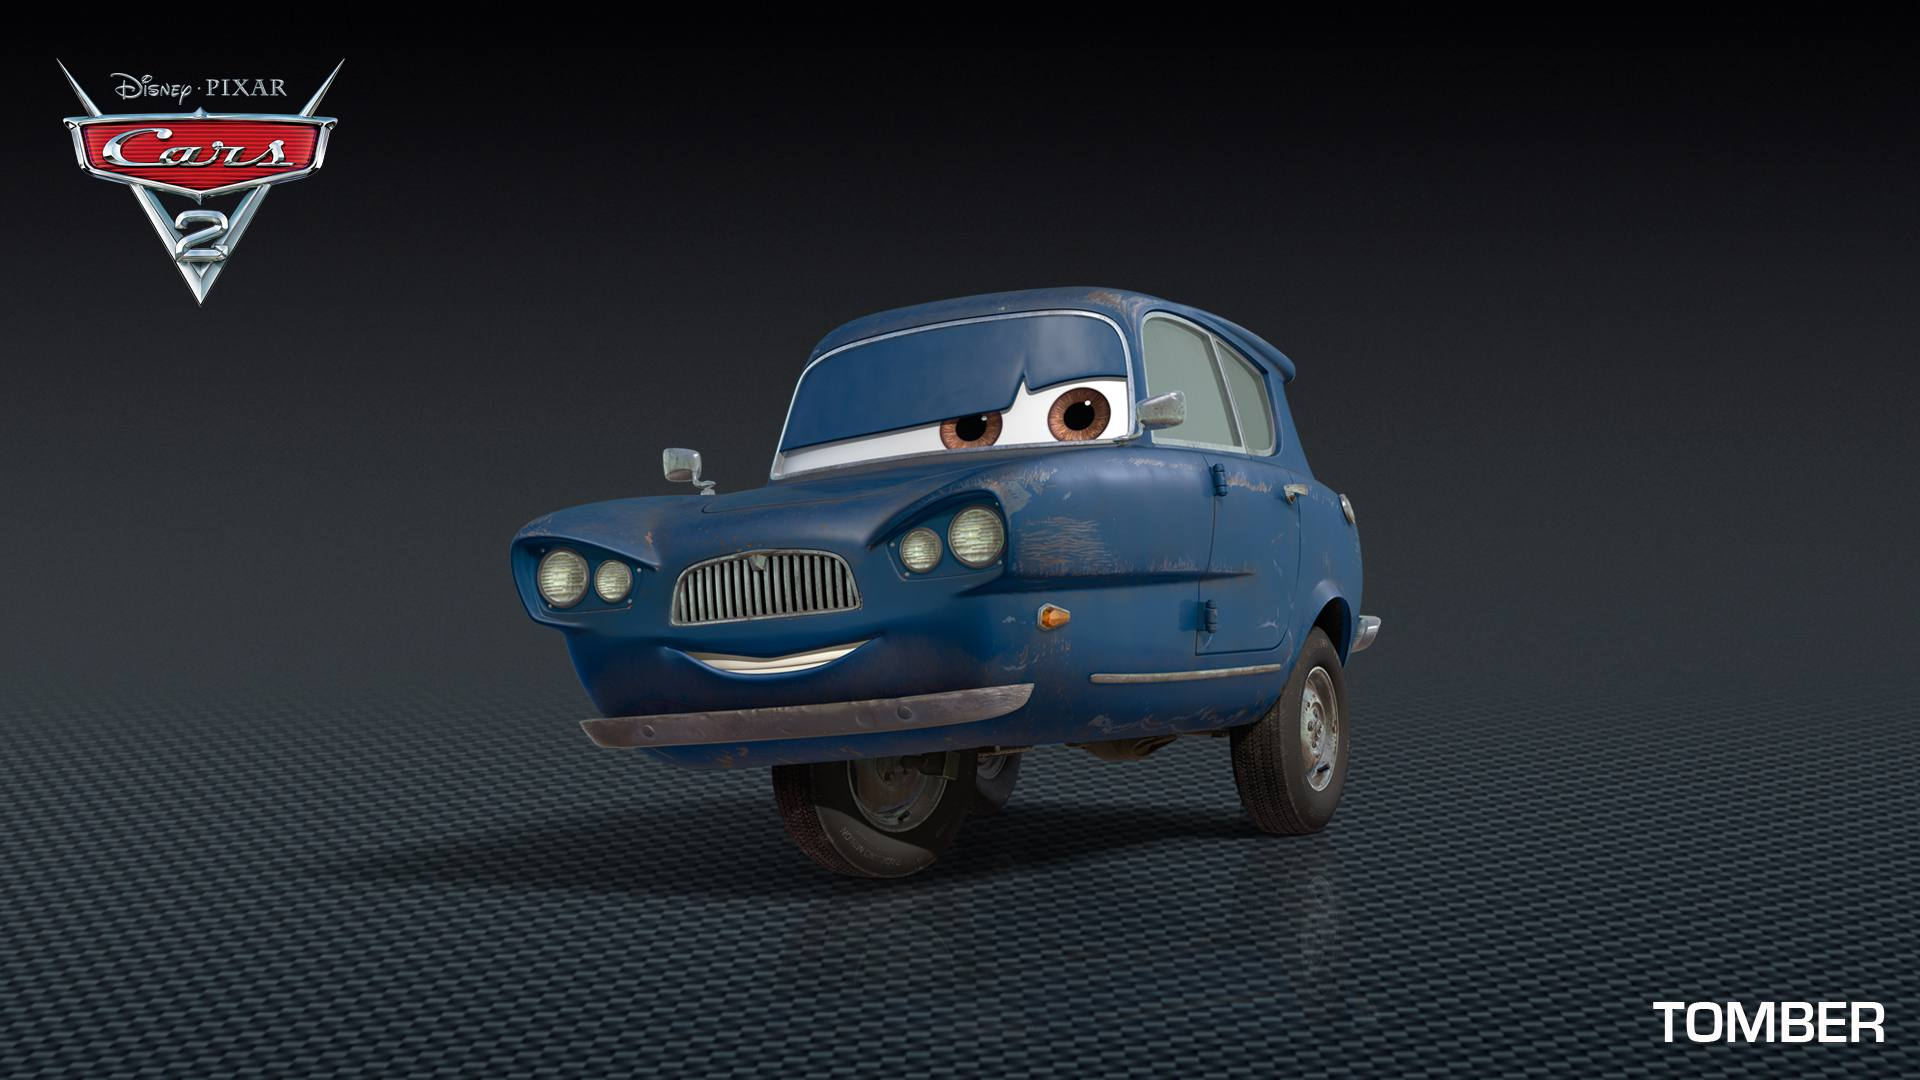 Tomber A Character In Cars 2 Is The Voice Of Michel Michelis